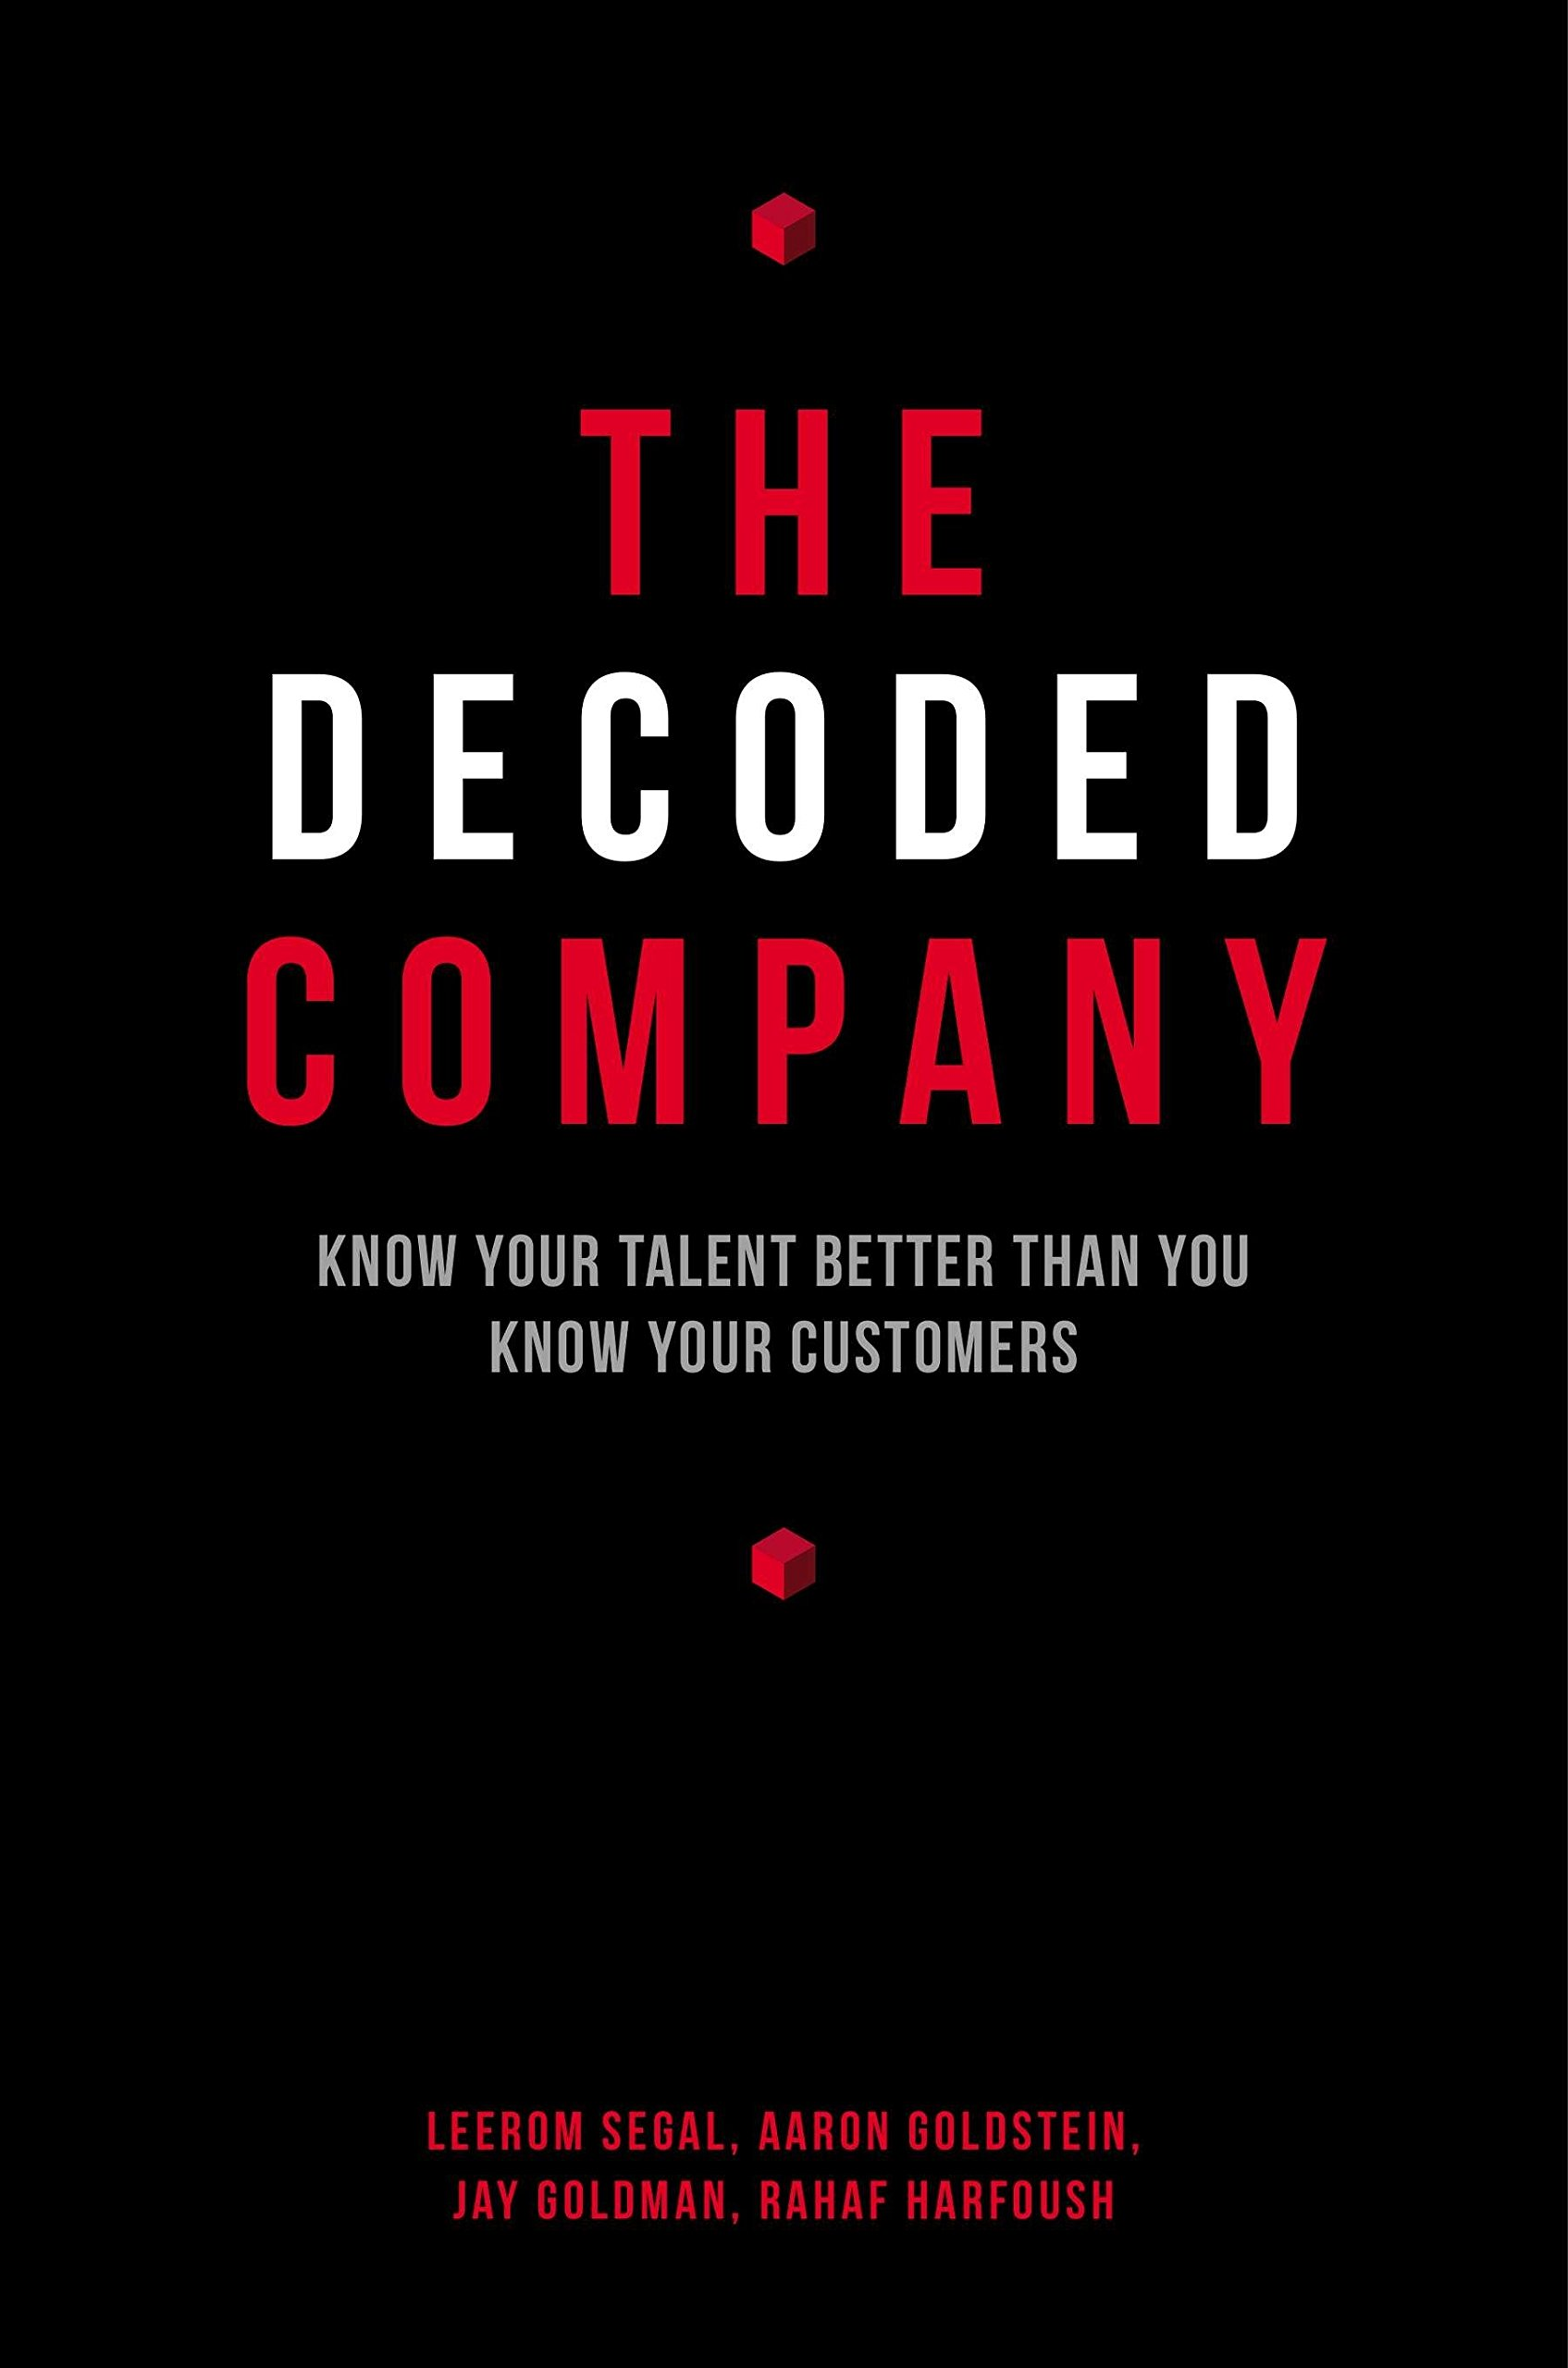 The decoded company know your talent better than you know your the decoded company know your talent better than you know your customers leerom segal aaron goldstein jay goldman rahaf harfoush 9781591847144 malvernweather Image collections